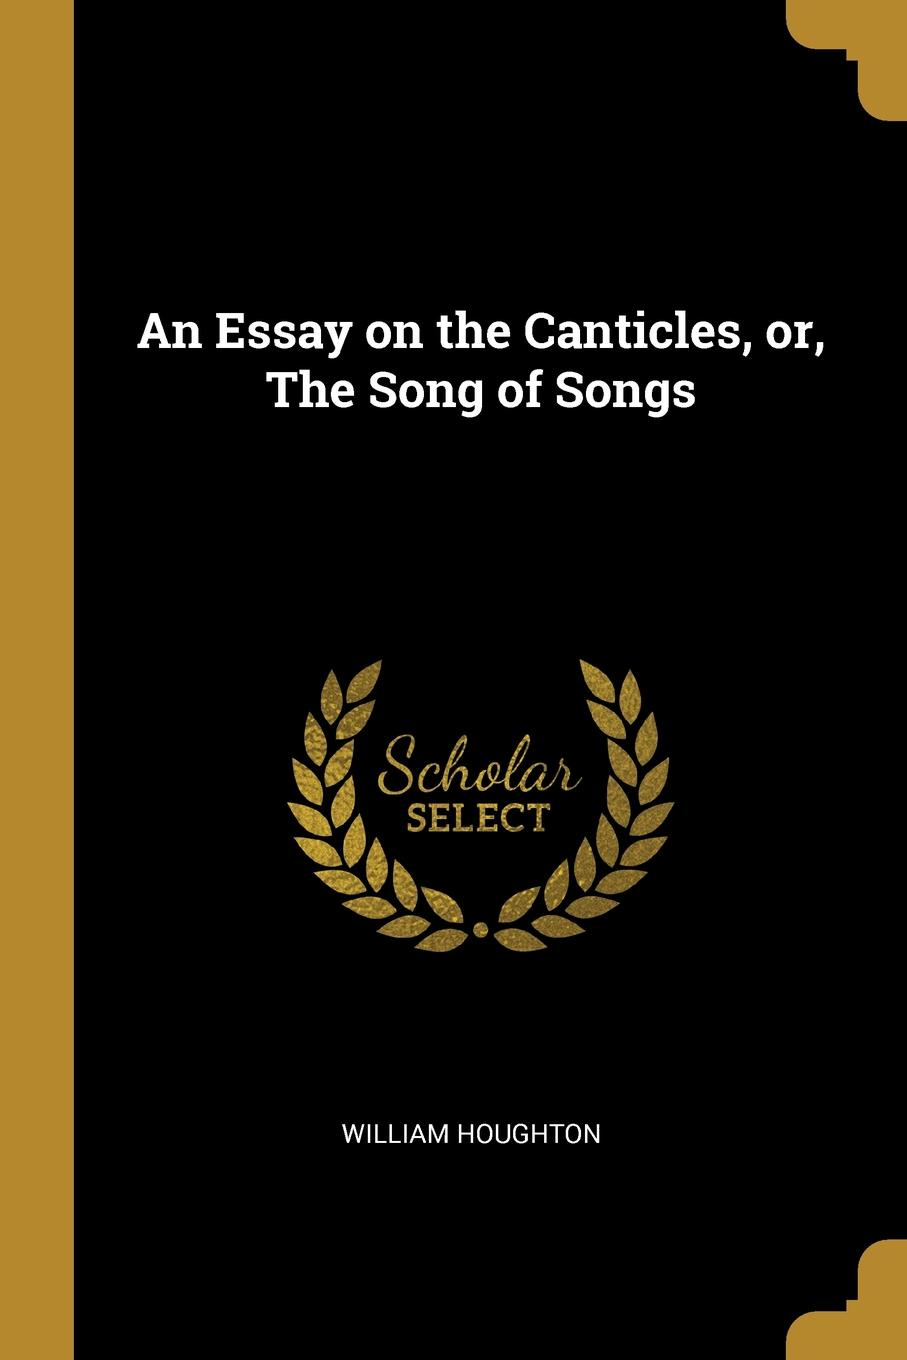 William Houghton. An Essay on the Canticles, or, The Song of Songs